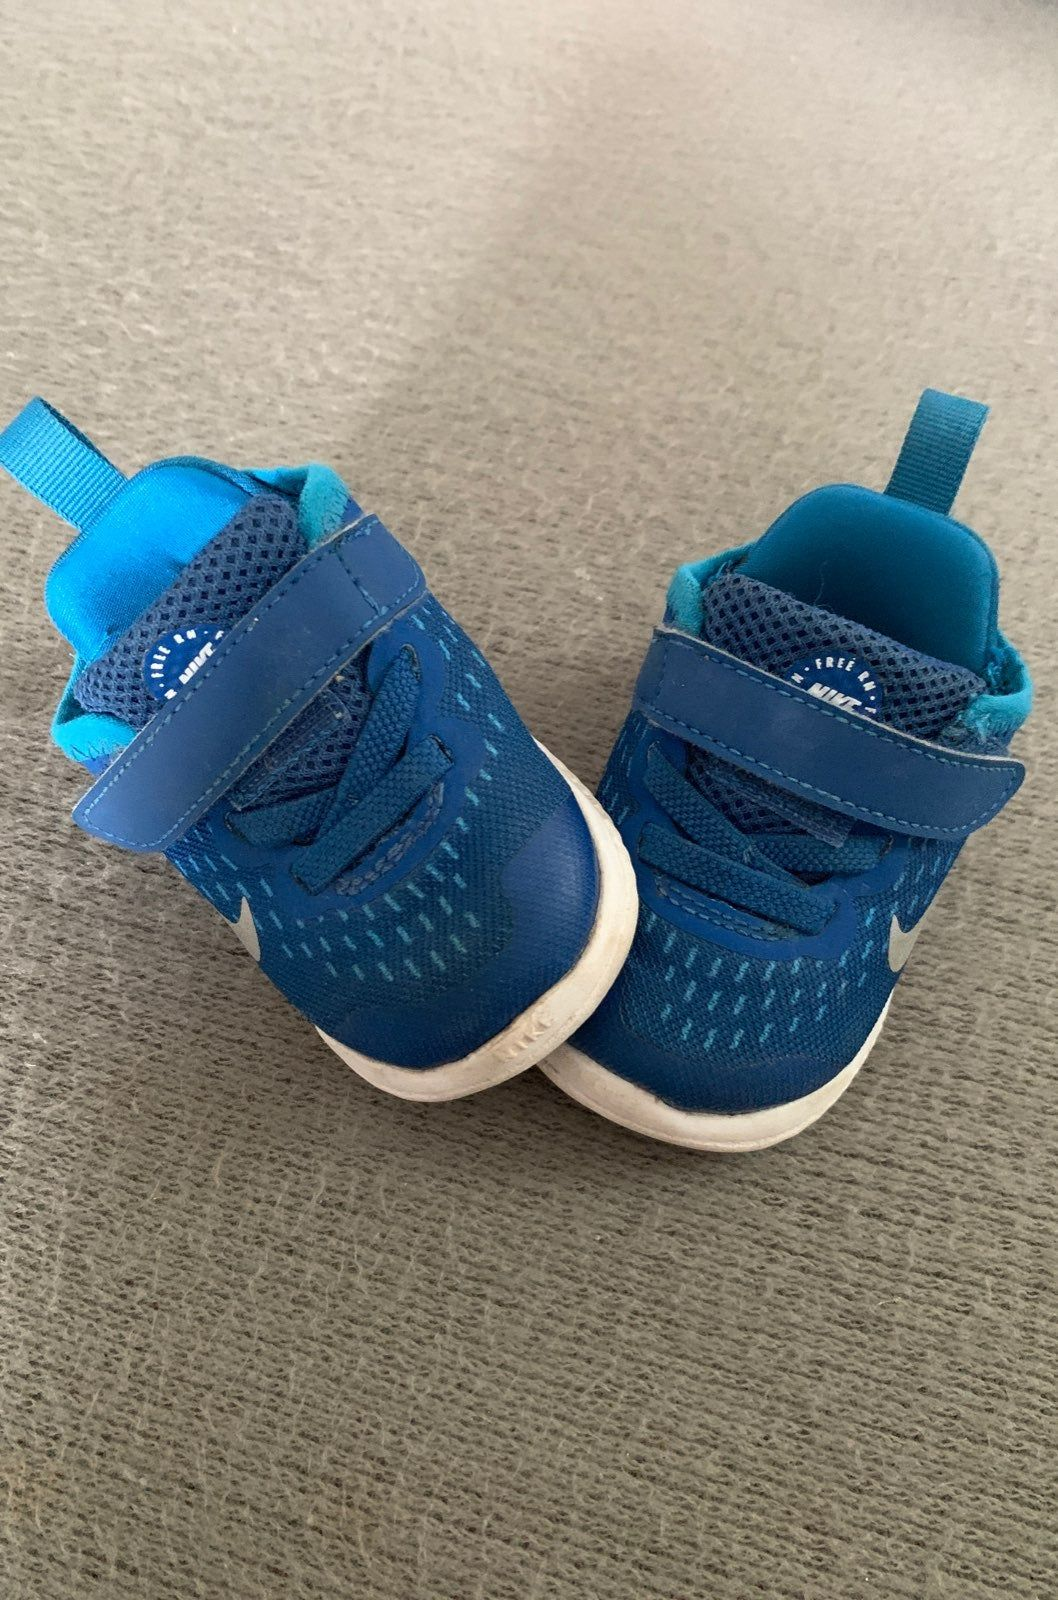 Baby shoes, Baby shoe sizes, Shoes